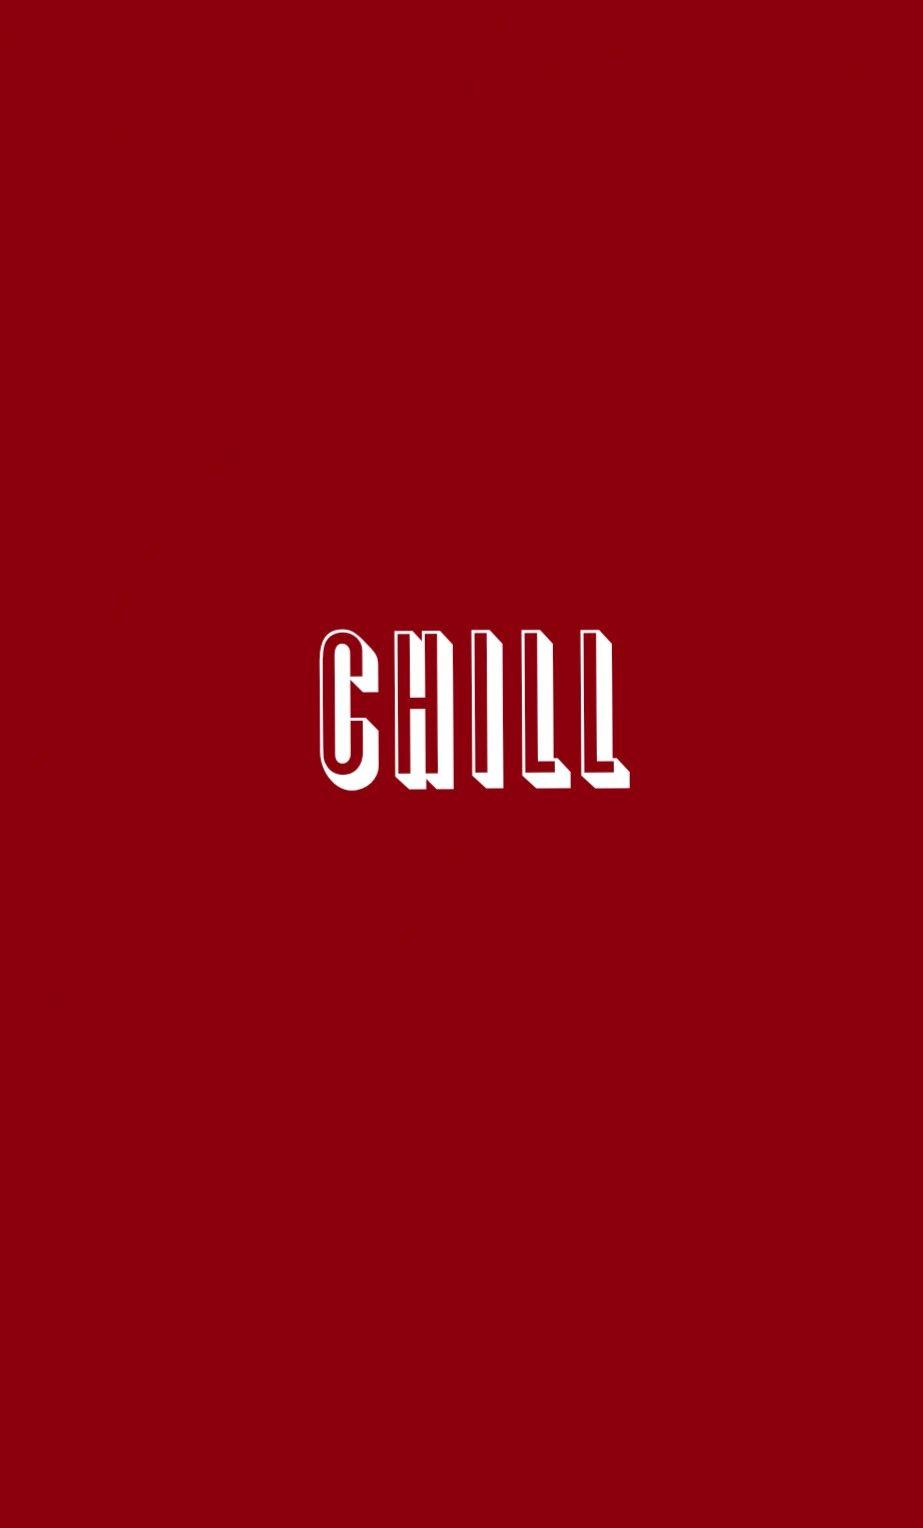 Download Netflix And Chill App Icon JPG